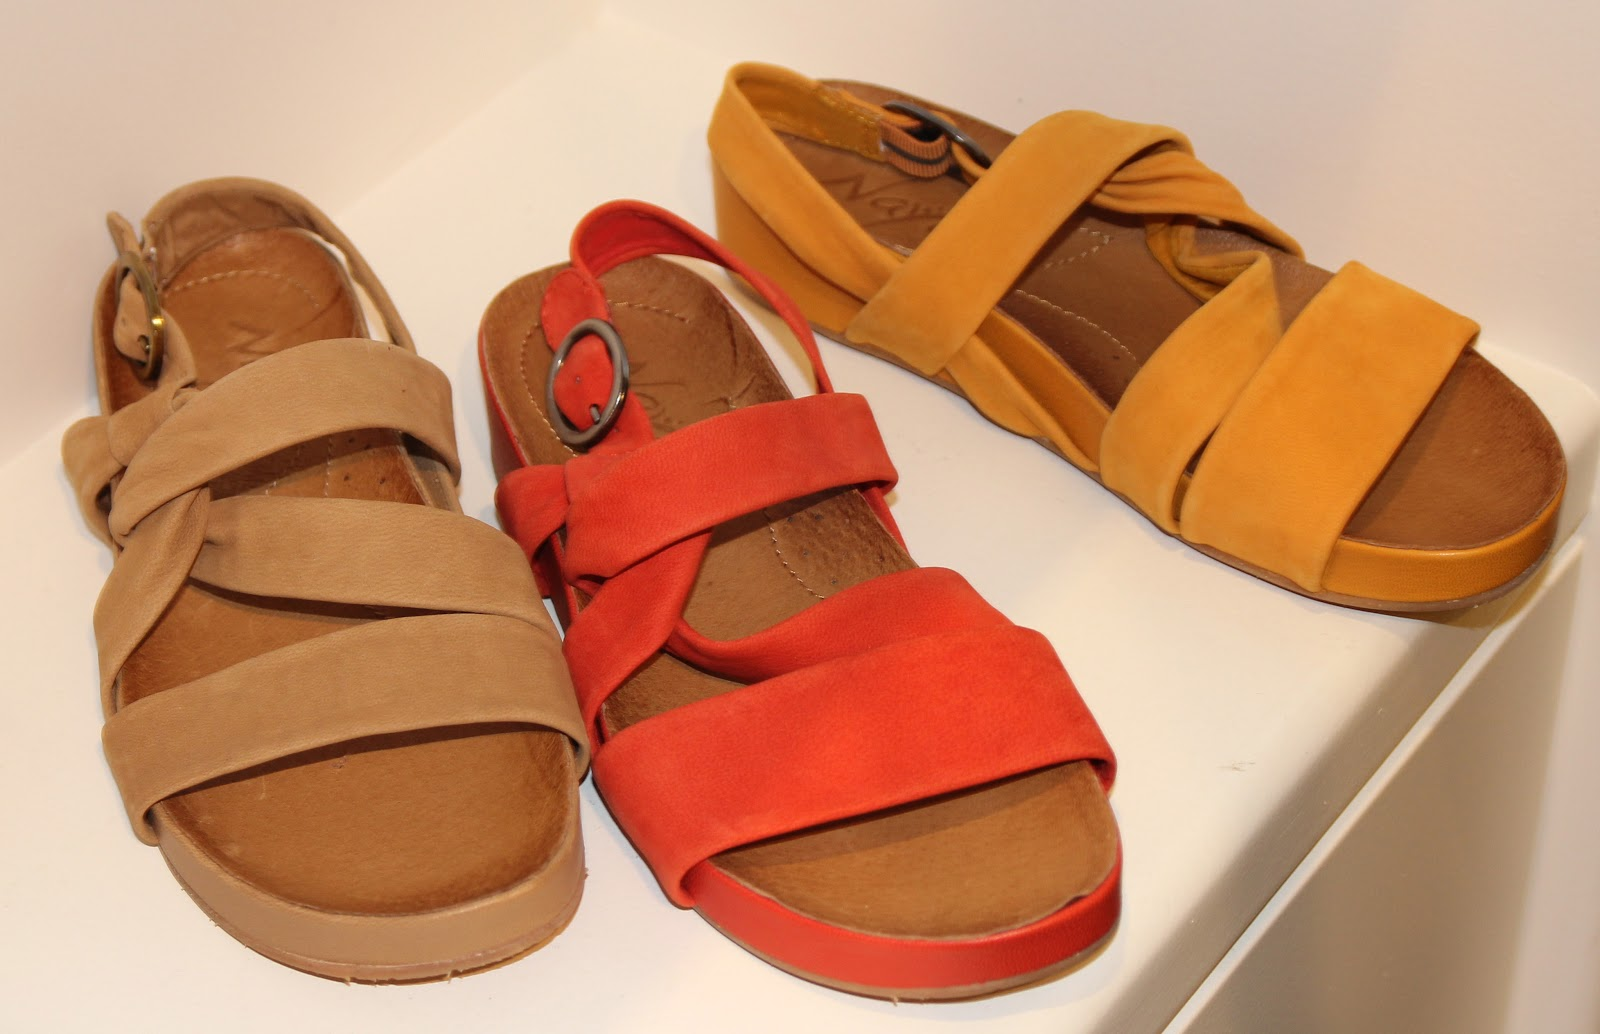 Brittany-nutty crunchy NOT -comfort sandal gets girly in a relaxed way with  thick leather upper straps in earth tones